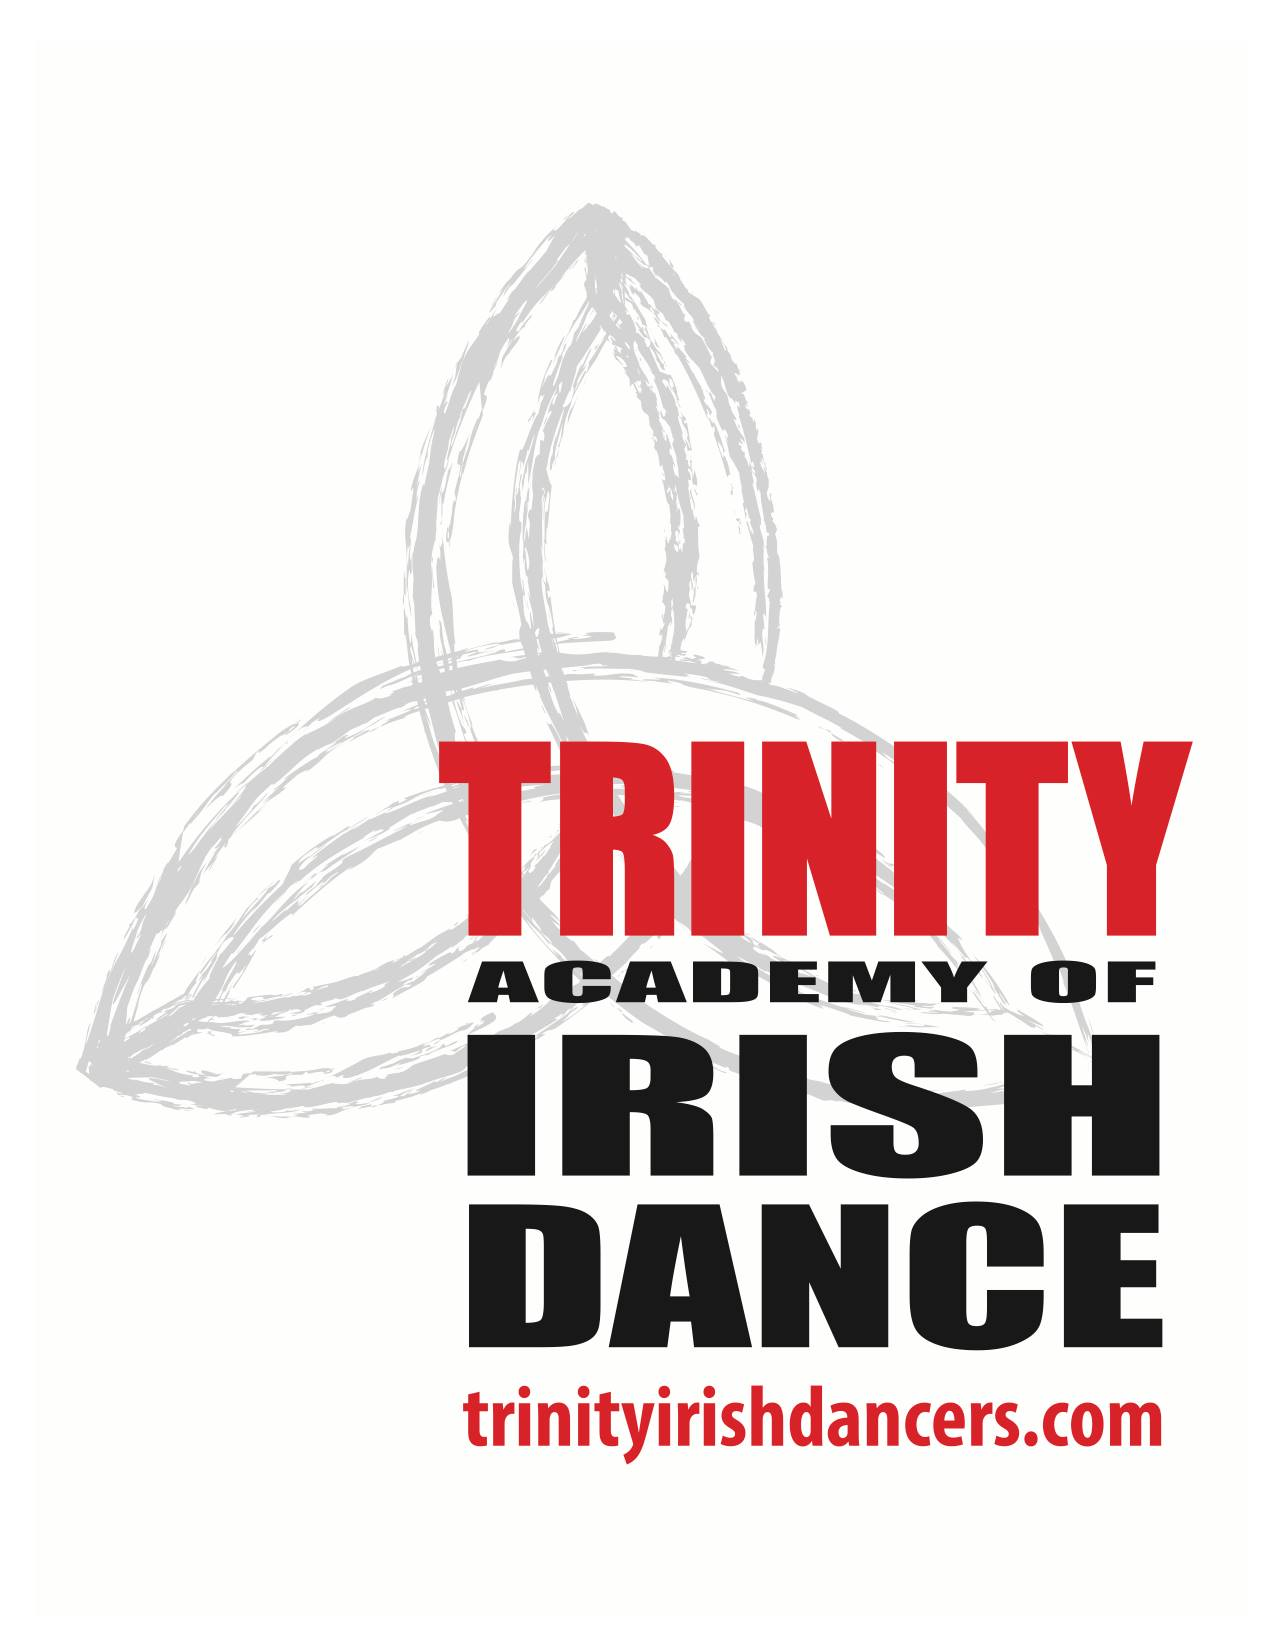 Trinity Academy of Irish Dance Celebrates Unprecedented 17th World Title with City-wide Celebration and Open House, March 7